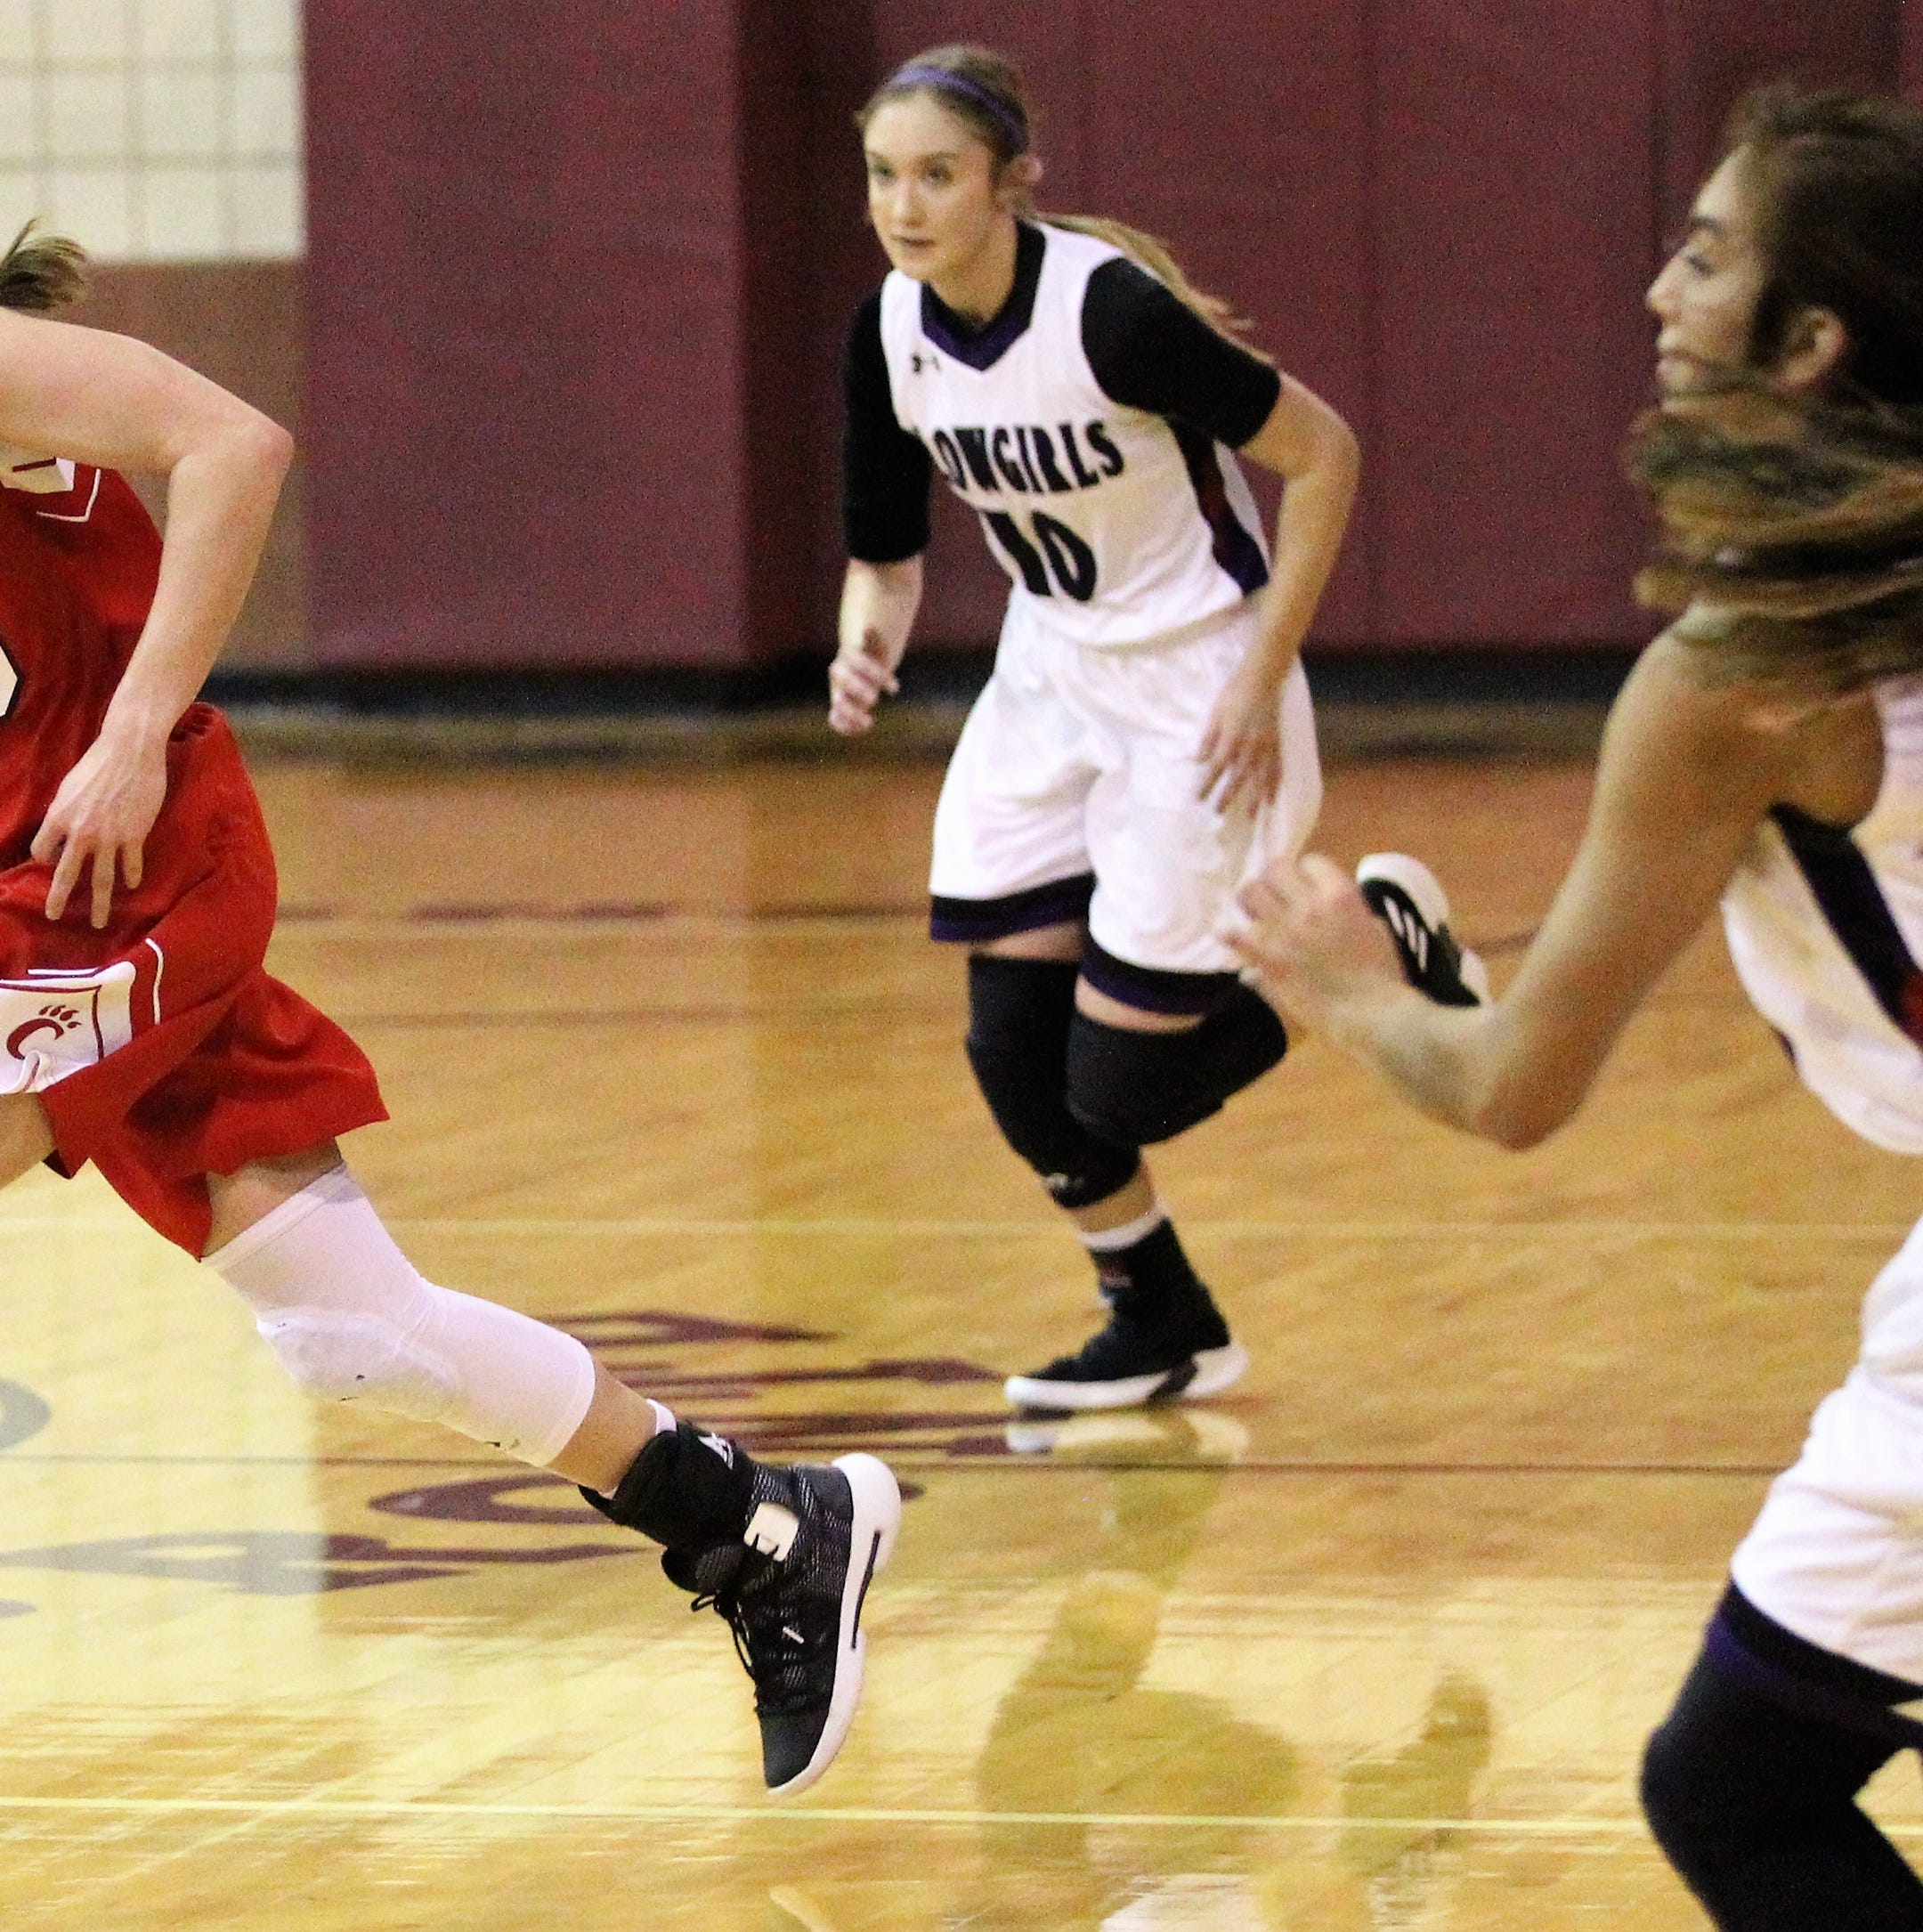 Christoval girls basketball team takes playoff-seasoned group into regional quarterfinal game with Seagraves